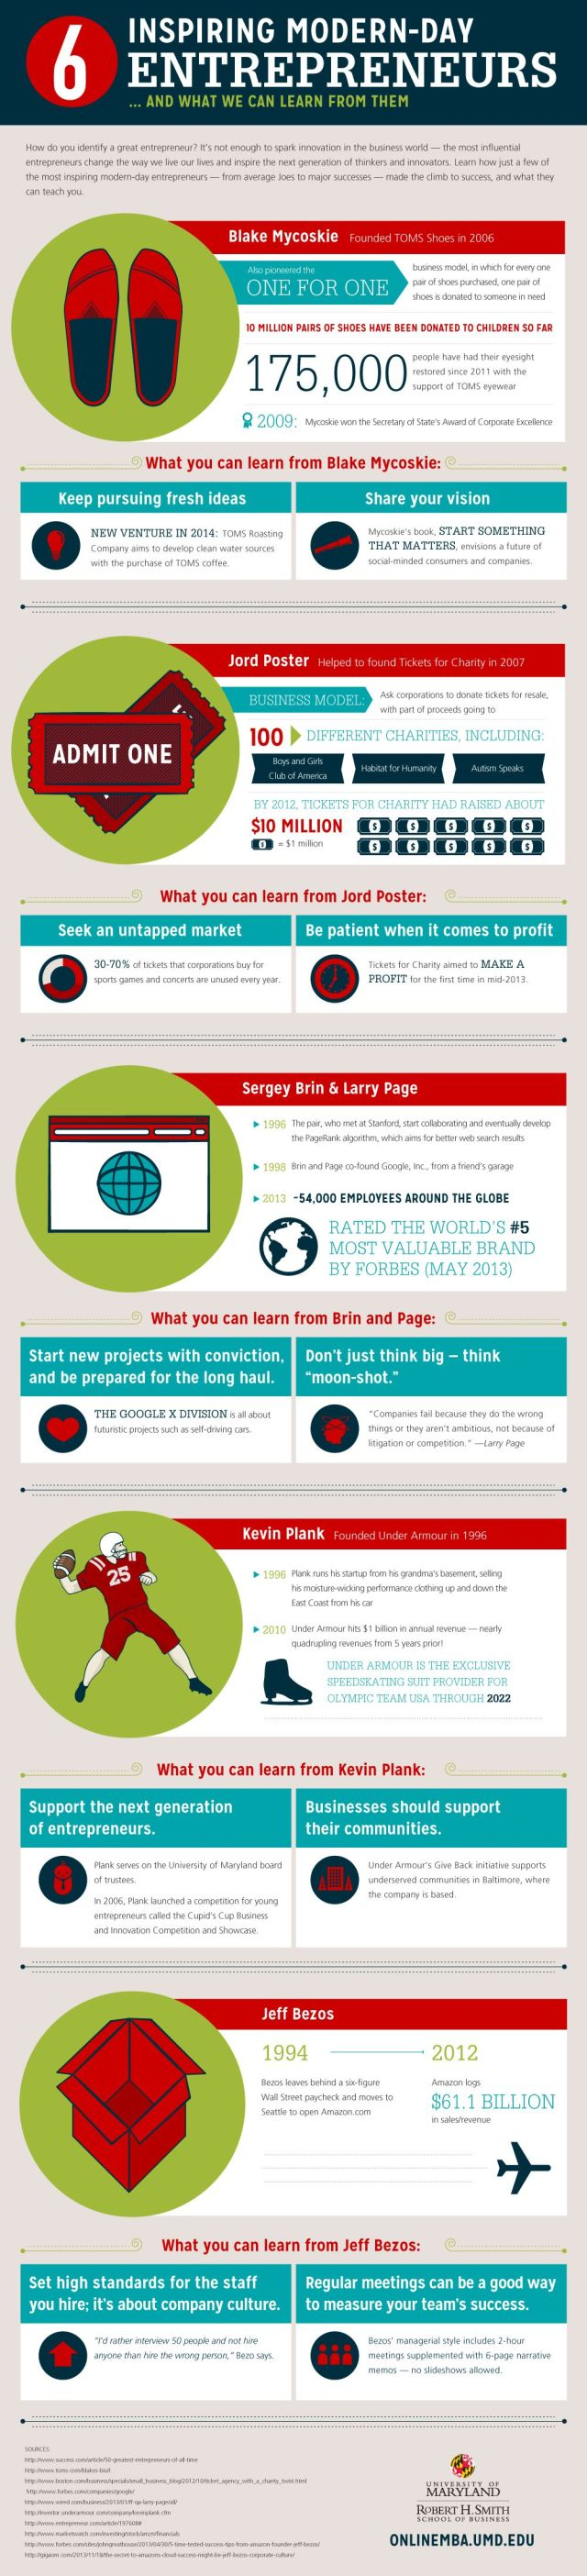 6 Inspiring Modern-Day Entrepreneurs and What We Can Learn From Them #infographic